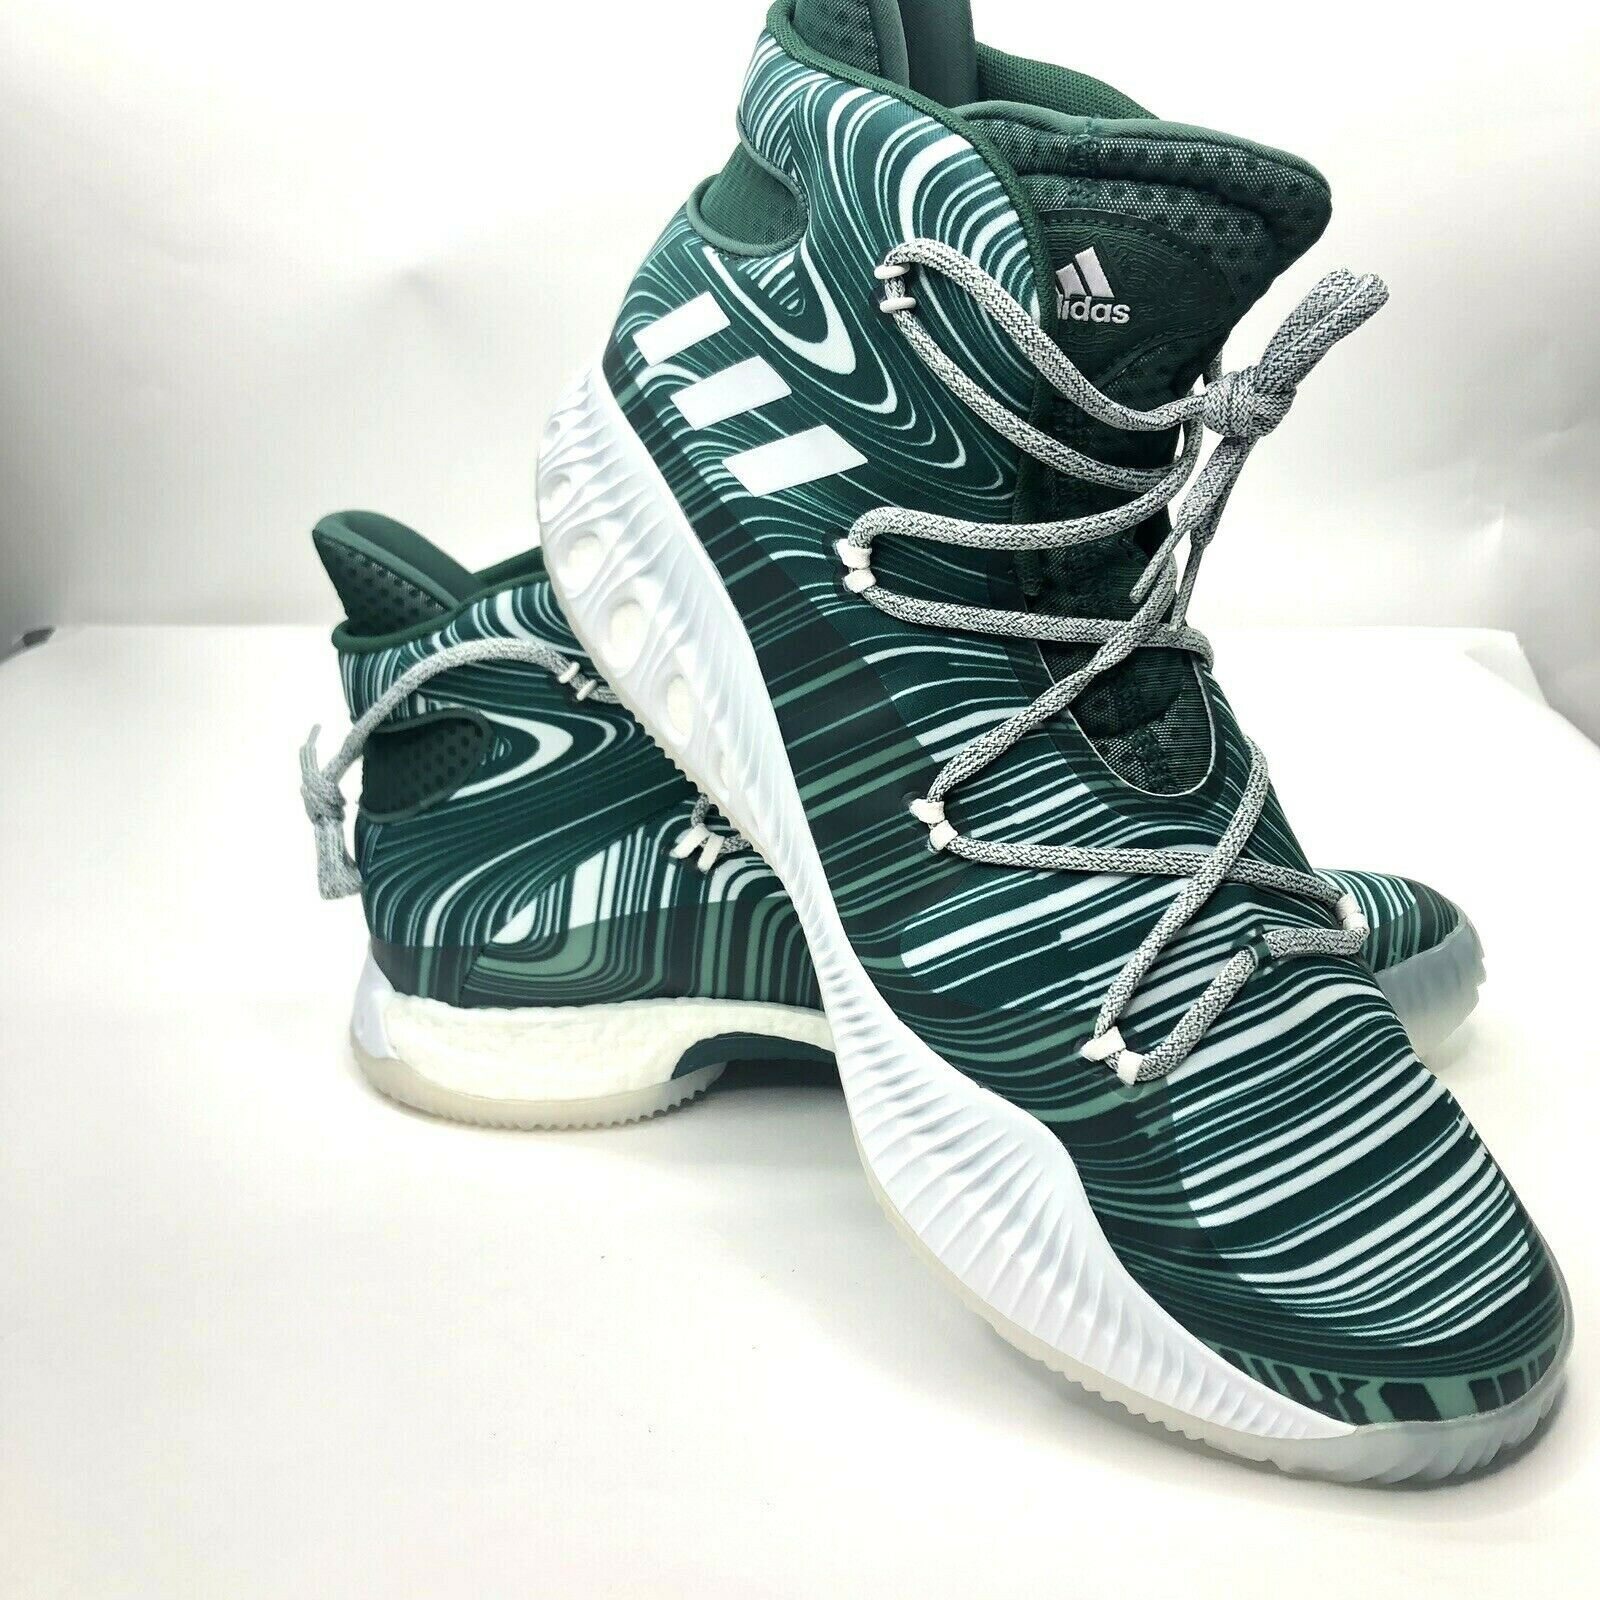 Adidas Men's Crazy Explosive Boost B38869 Basketball Green Sneakers SZ 18 New